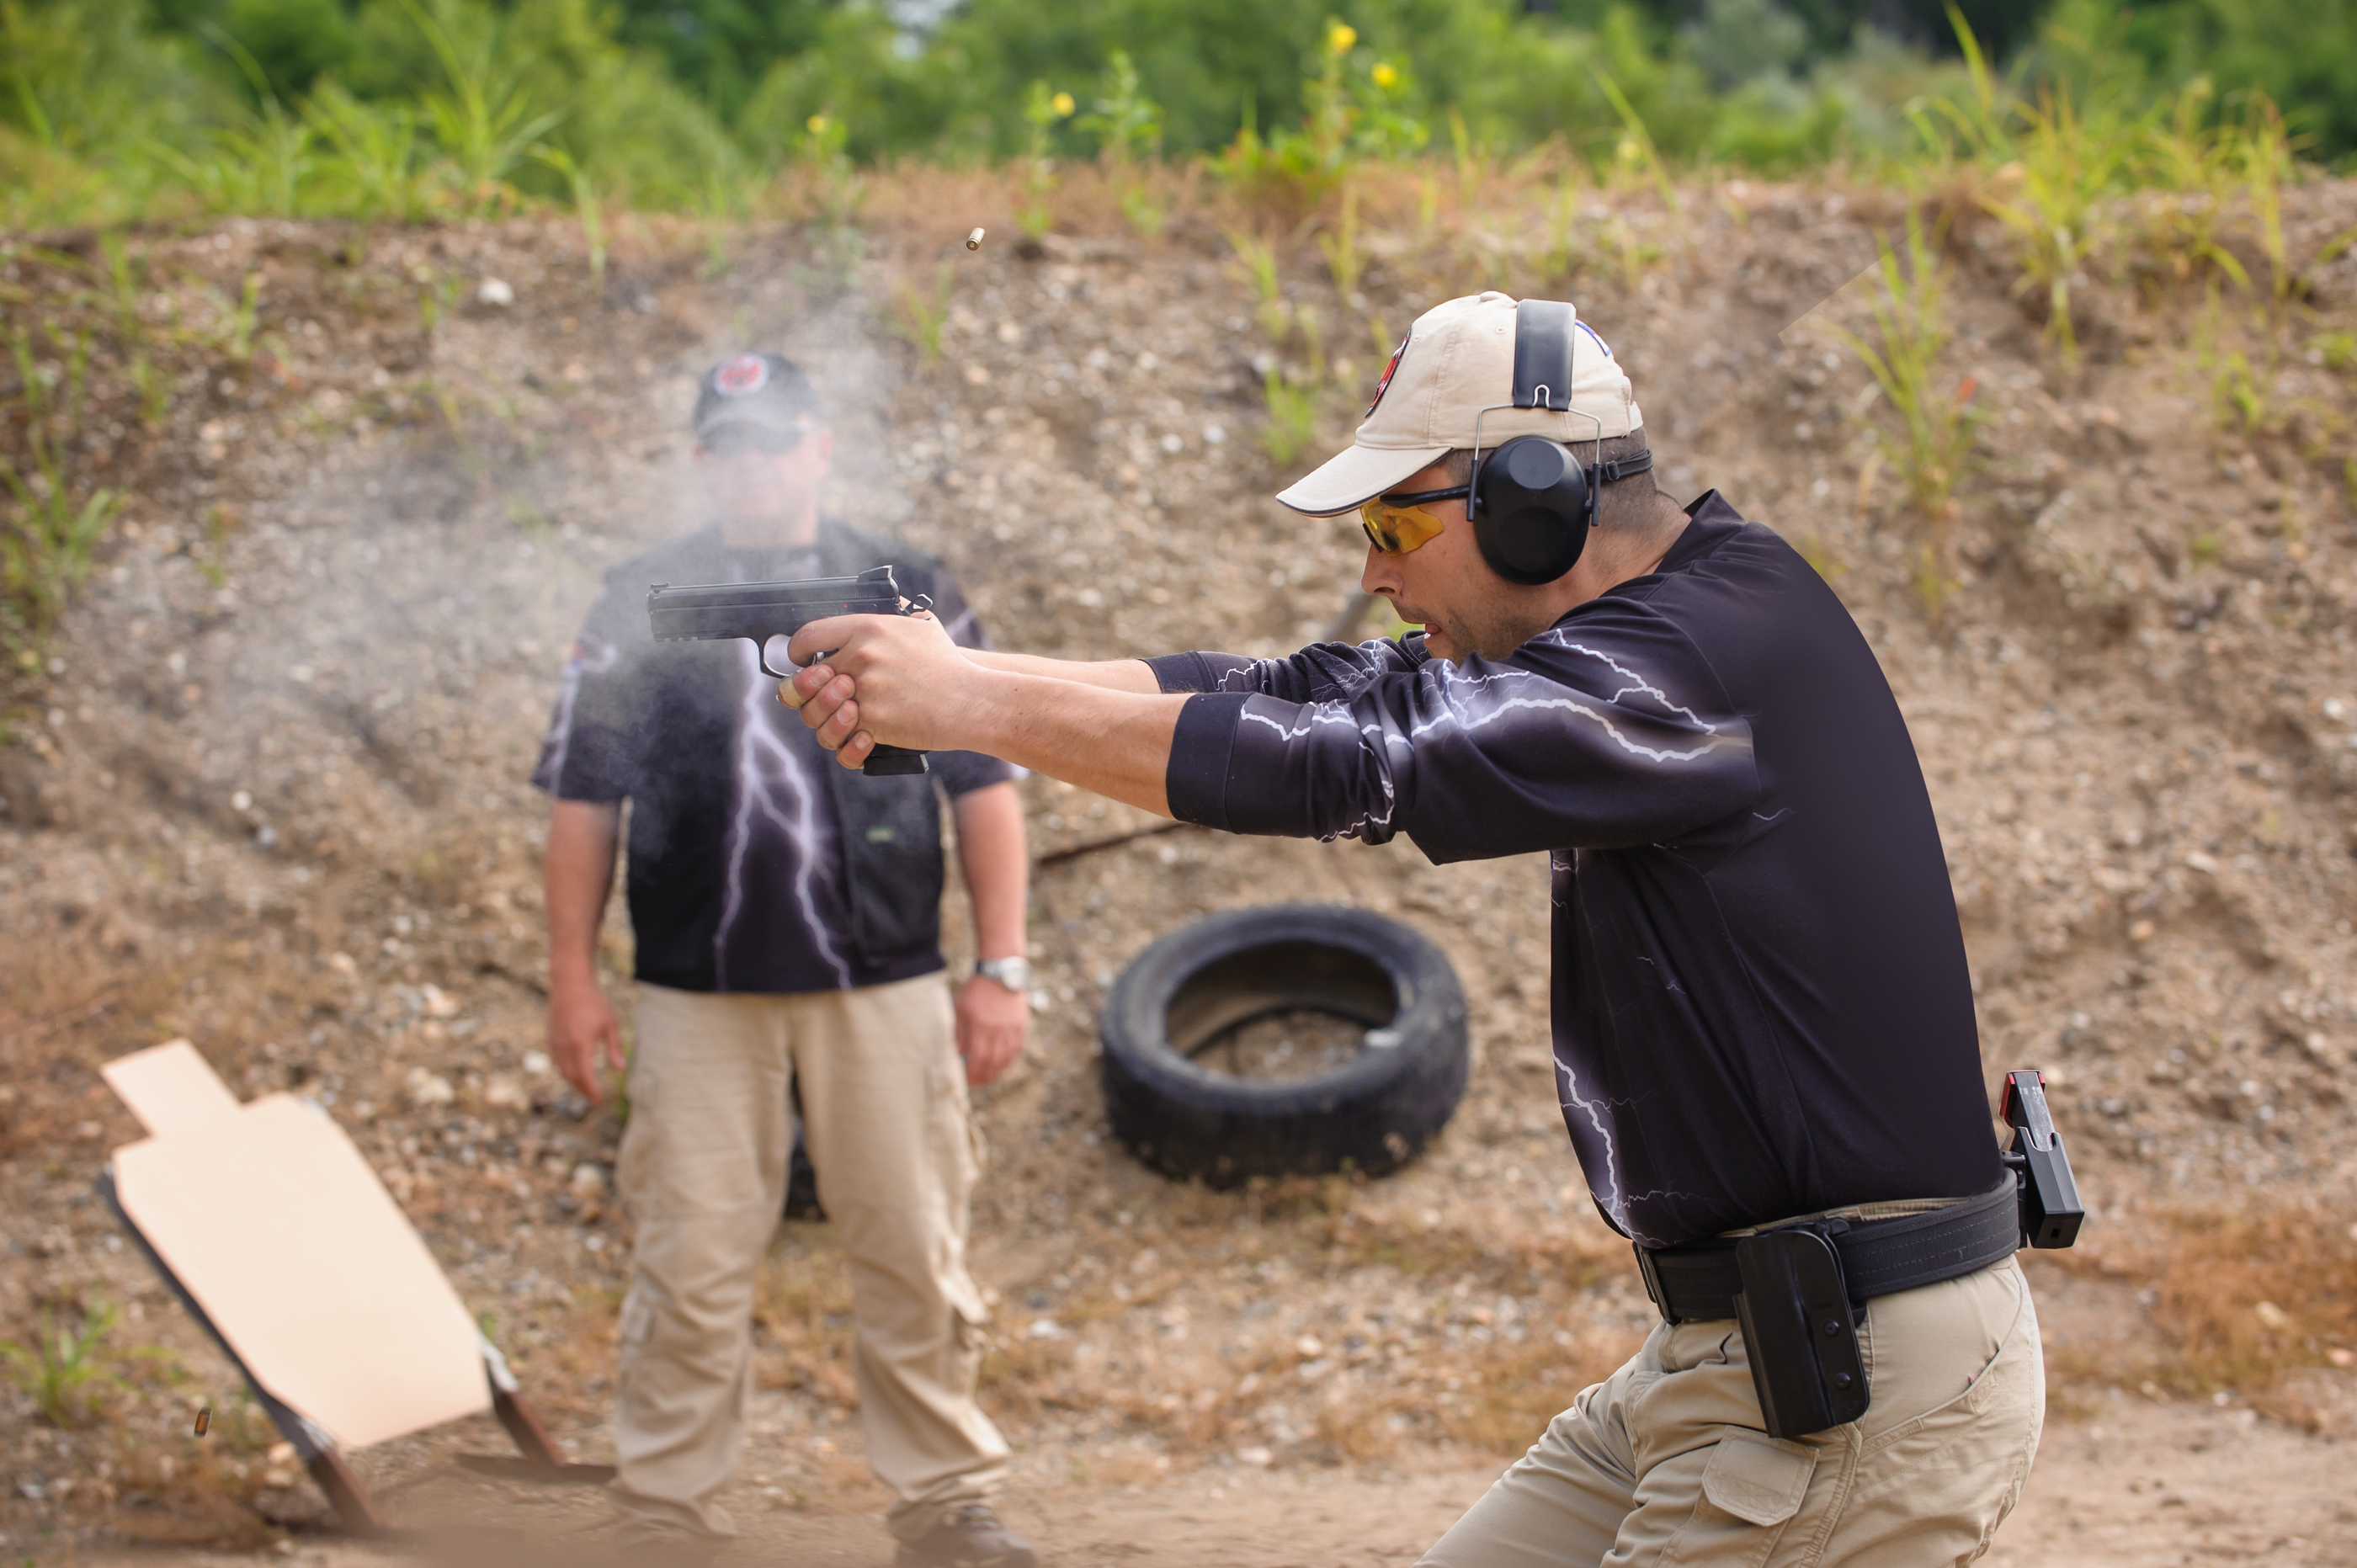 Shooting and Weapons Training